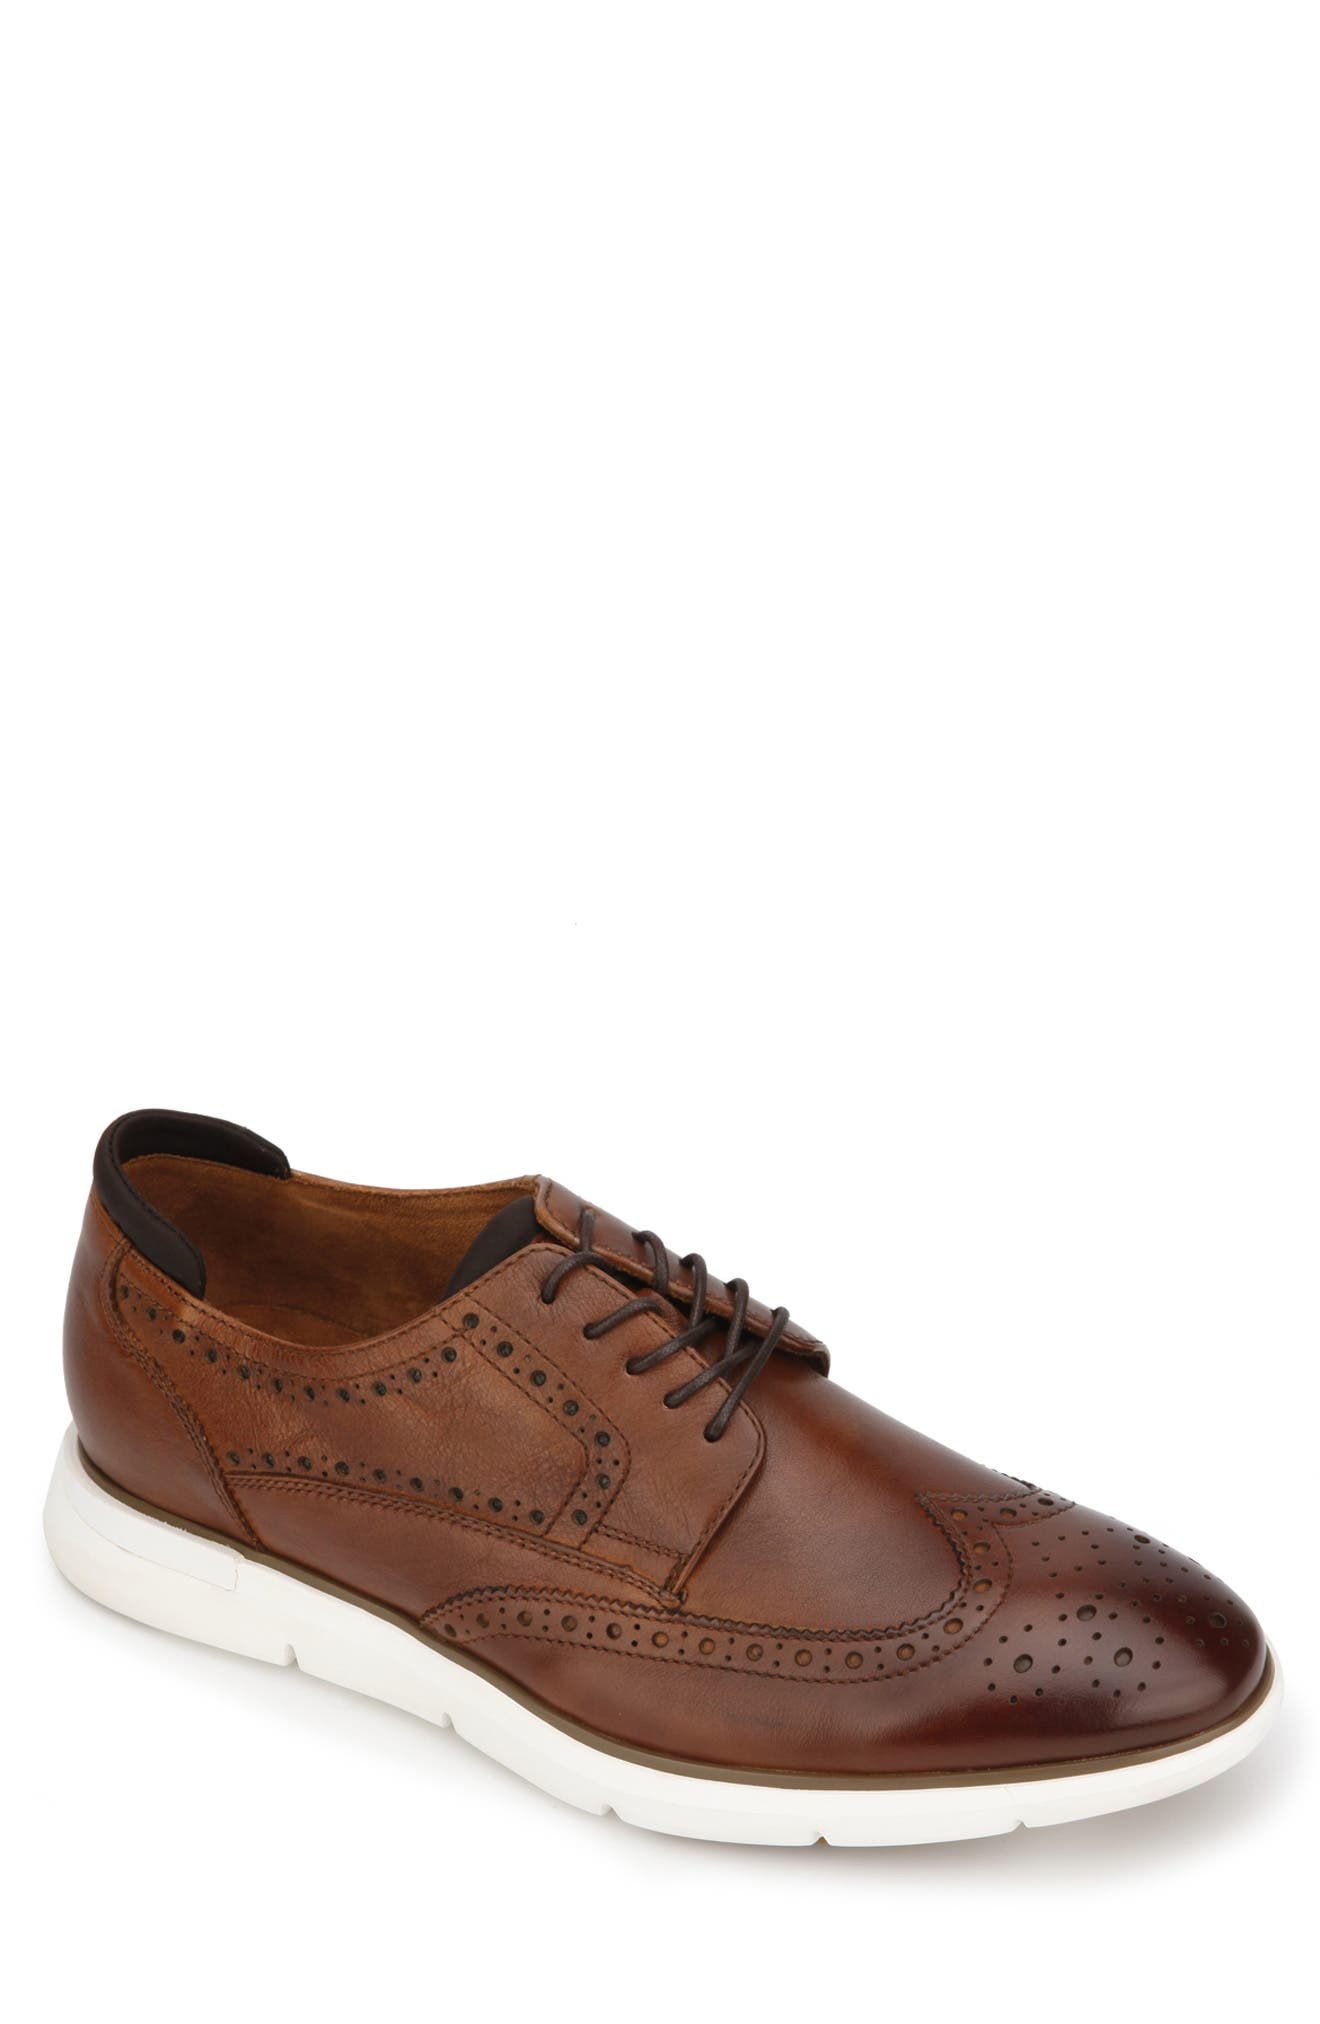 KENNETH COLE NEW YORK Dover Wingtip, Main, color, COGNAC GRAIN LEATHER